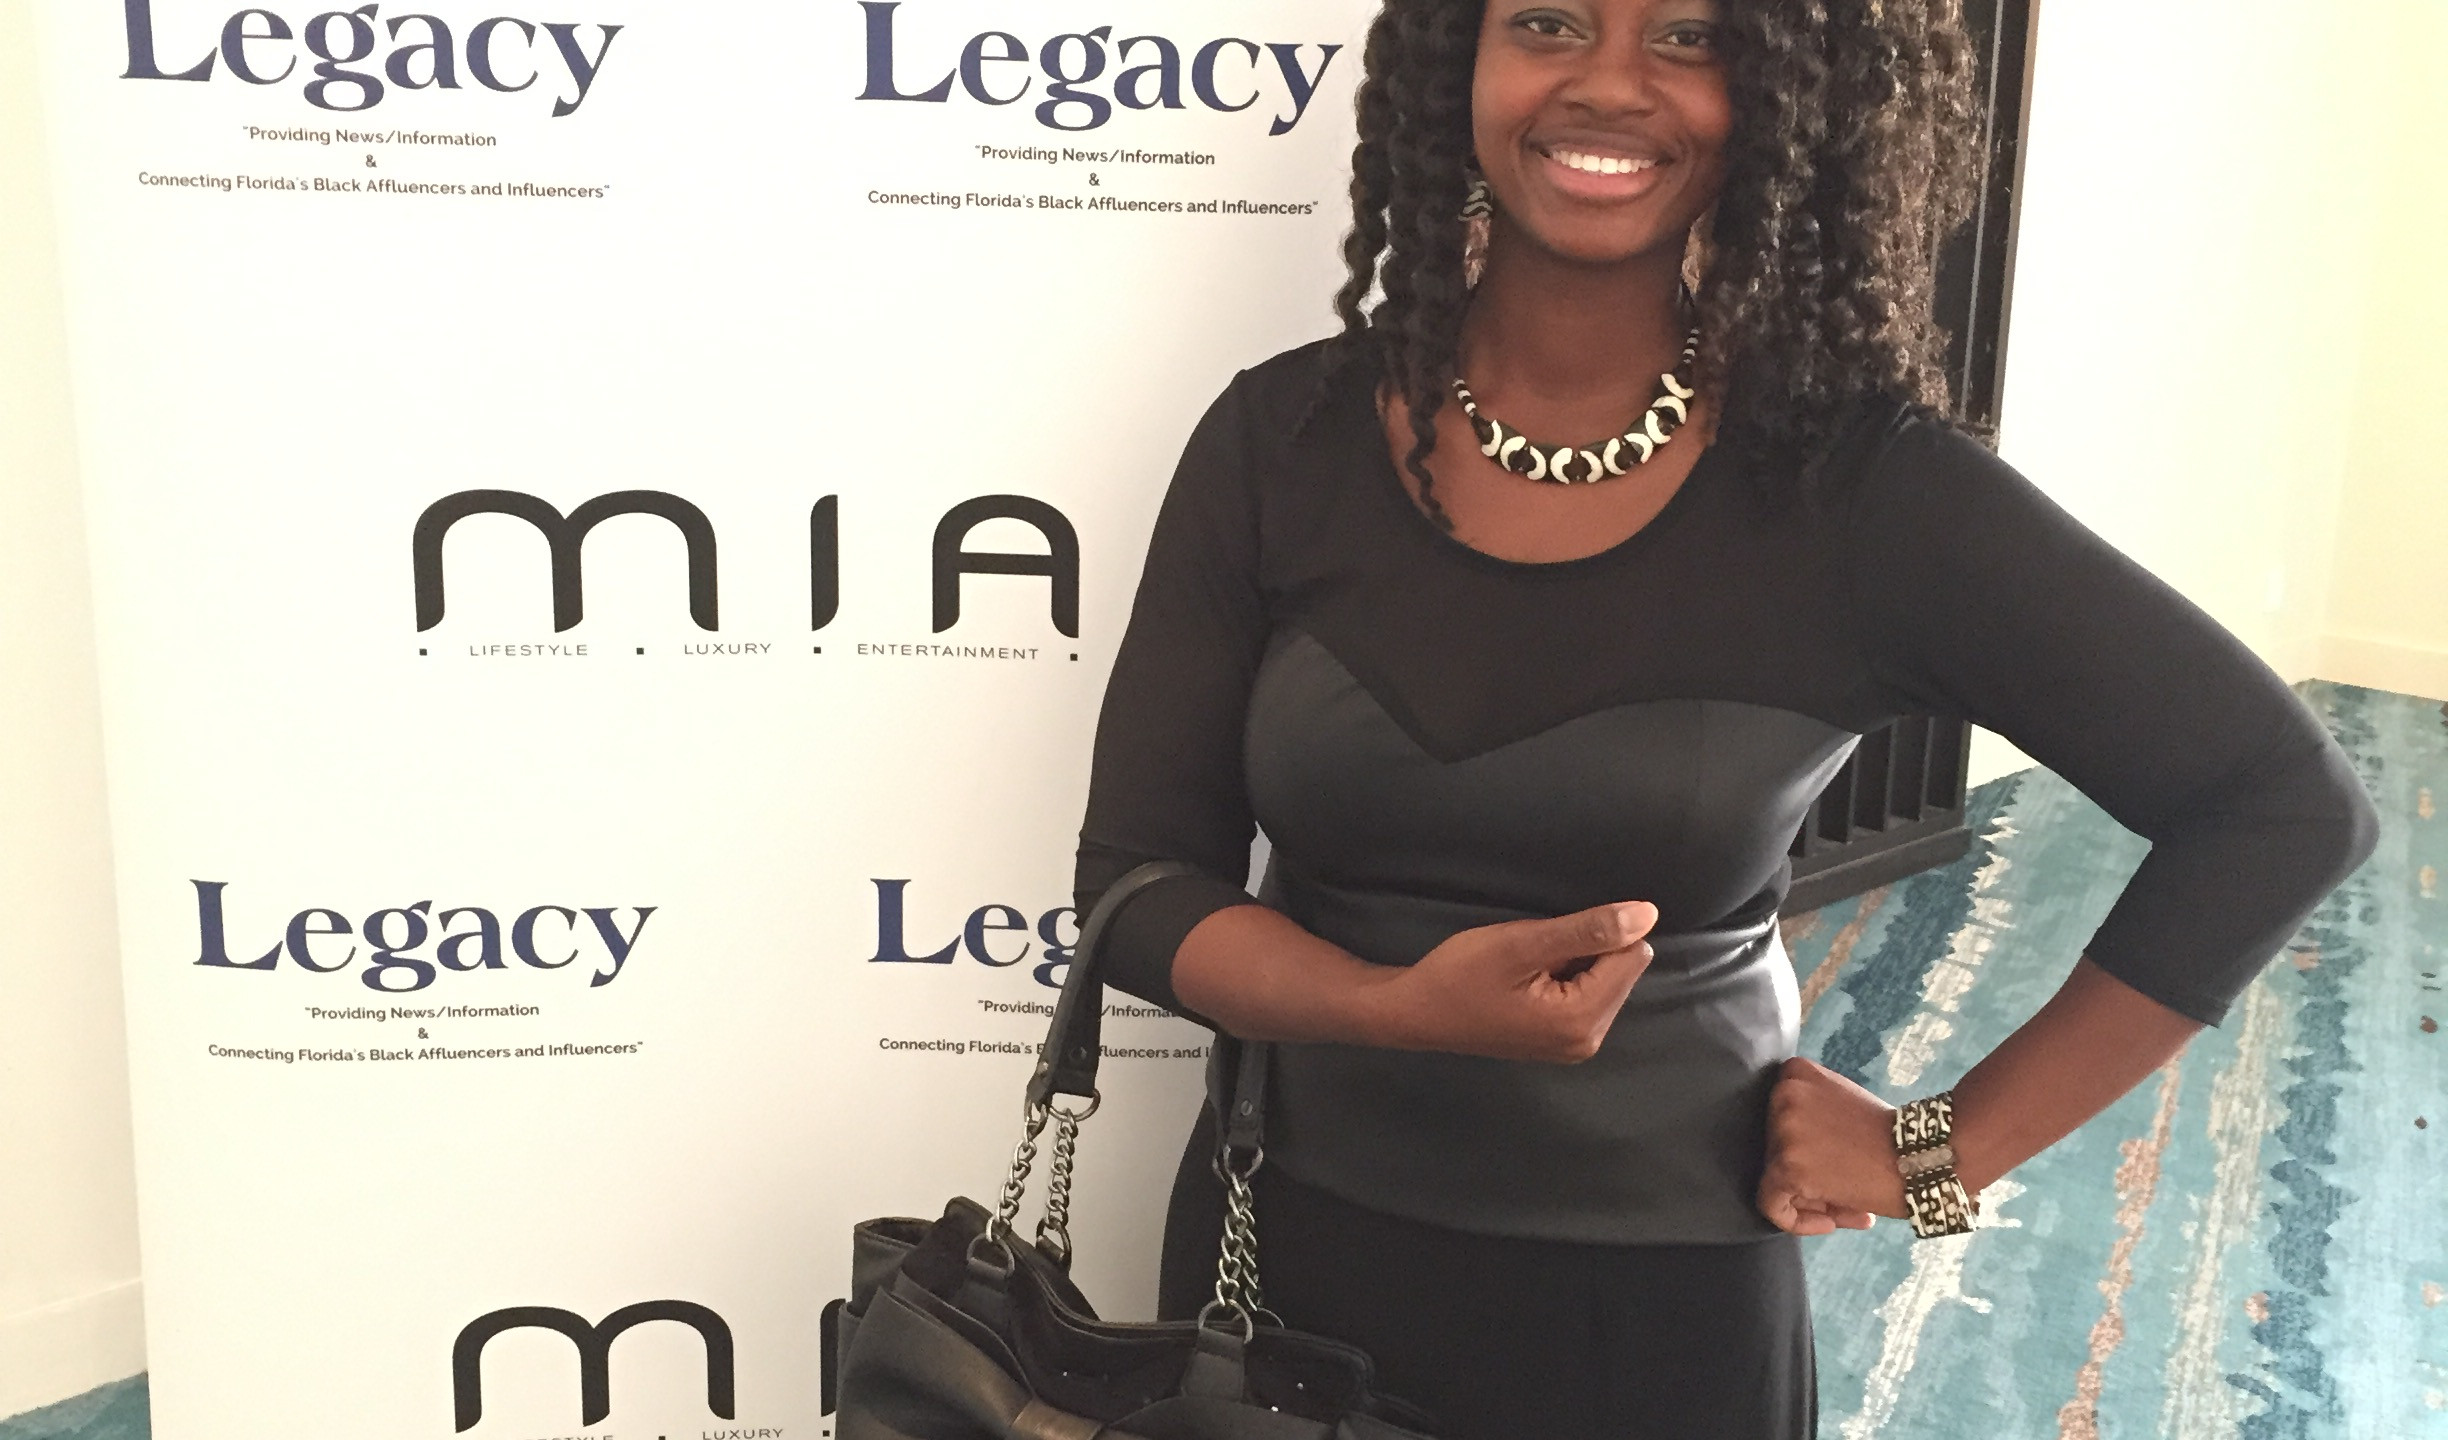 Legacy Magazine Awards & Reception